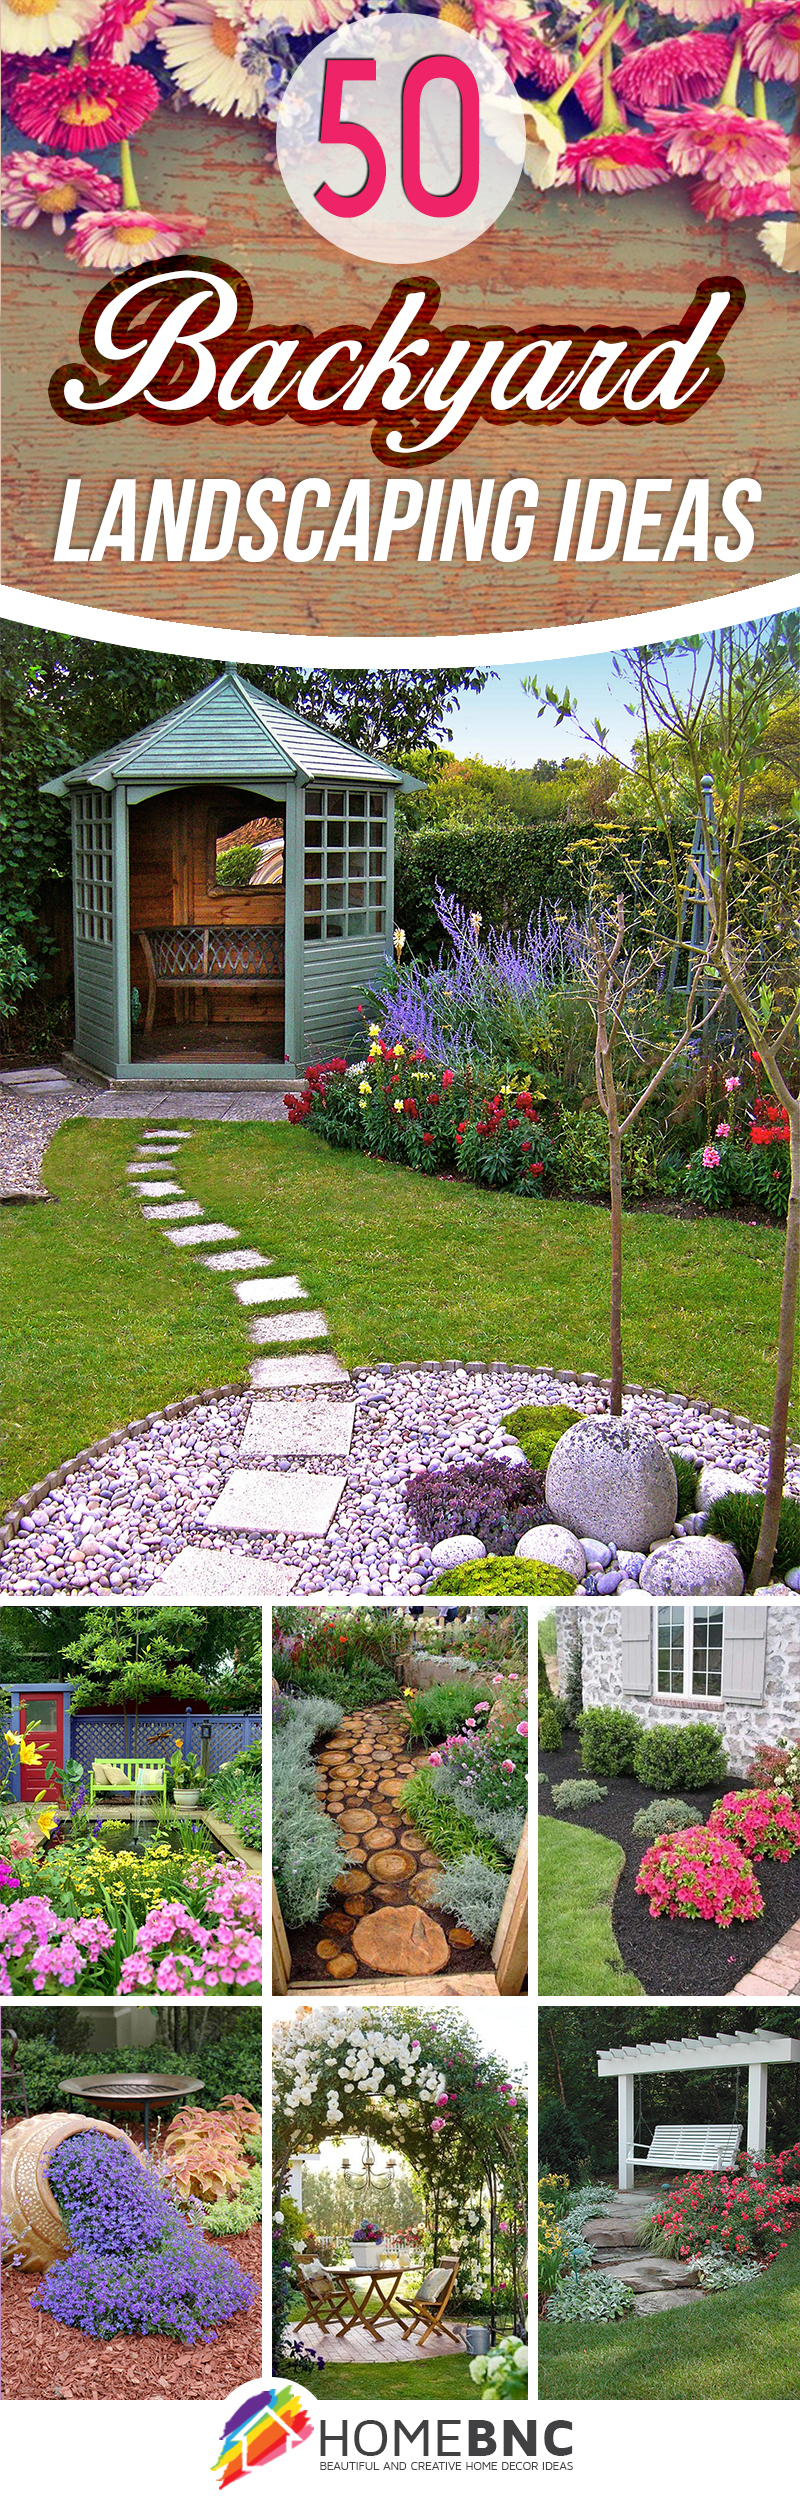 50 Best Backyard Landscaping Ideas And Designs In 2019 regarding 12 Genius Ideas How to Improve Backyard Landscaping Design Ideas